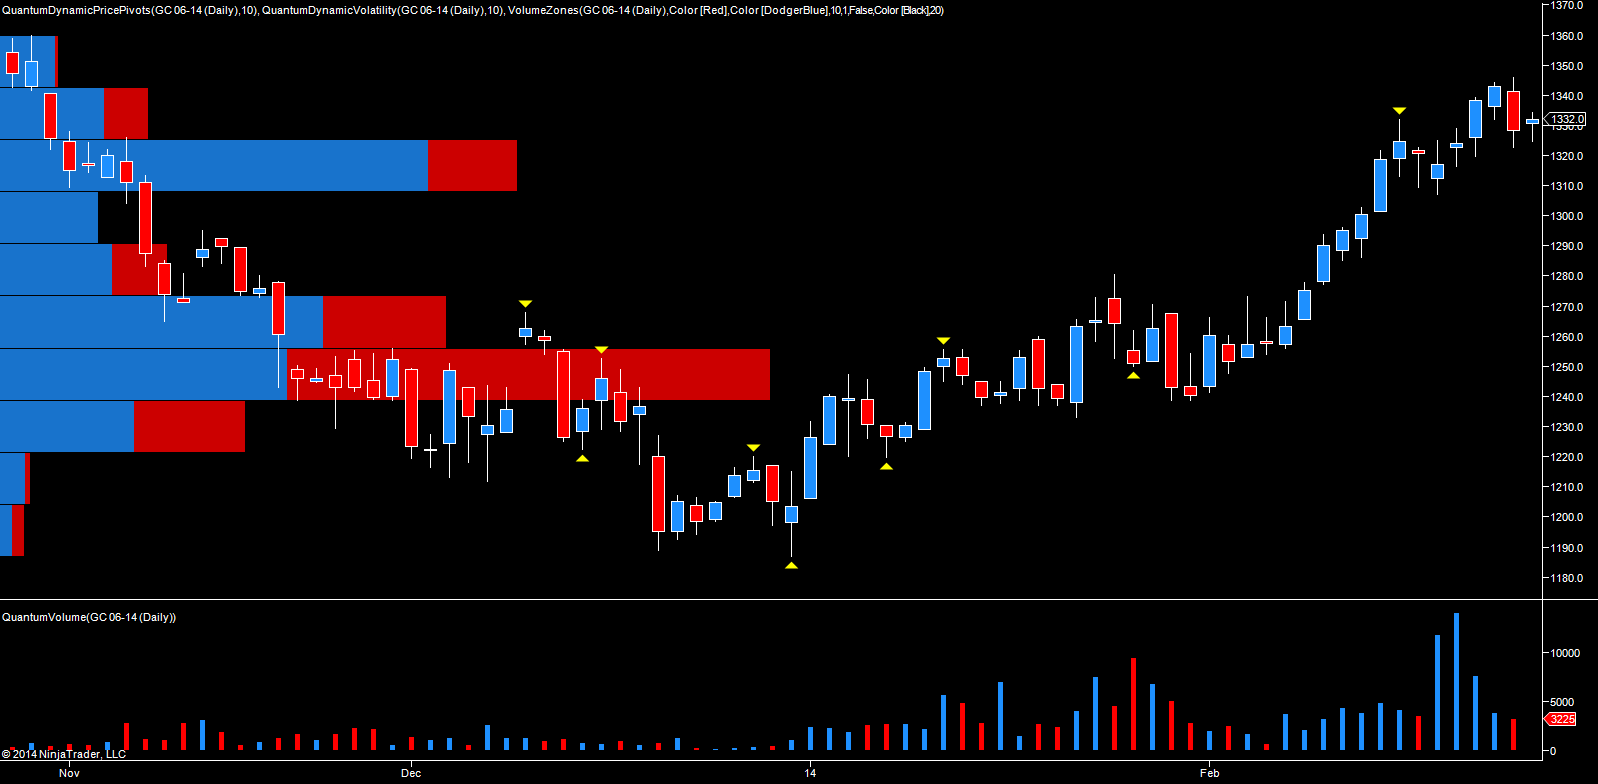 June gold futures - daily chart